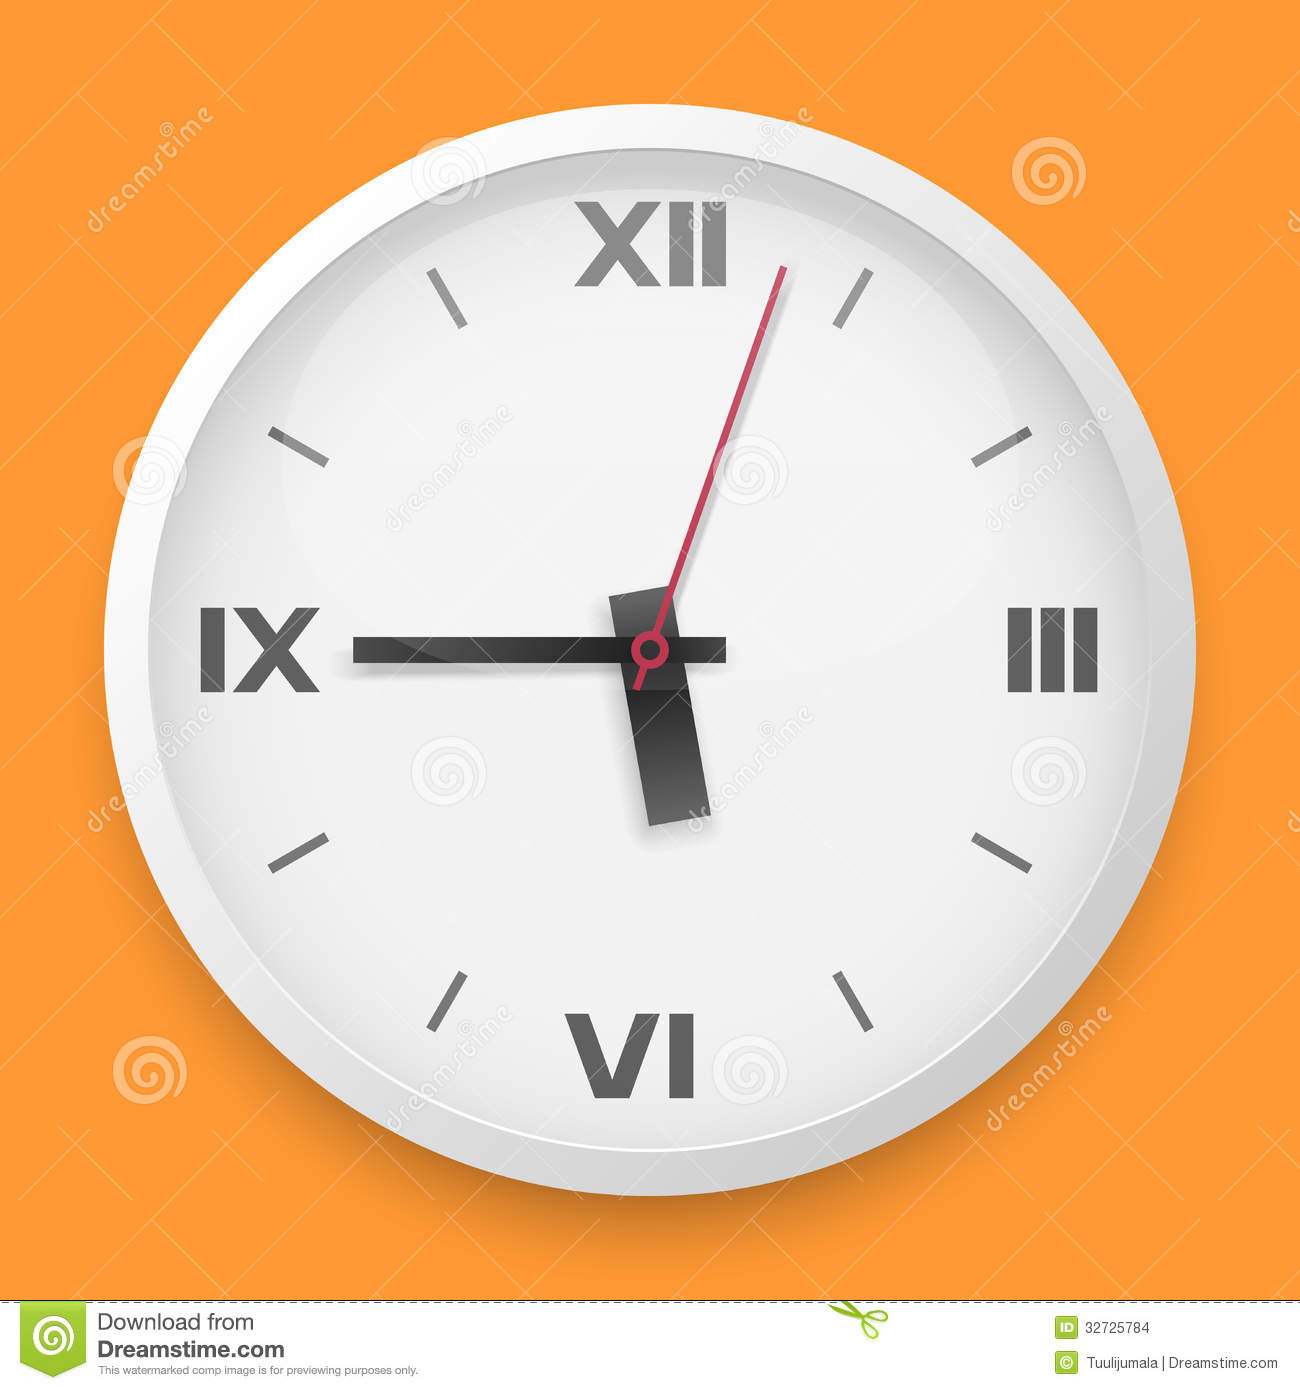 Wall Clock Design Template : Round wall clock template stock images image